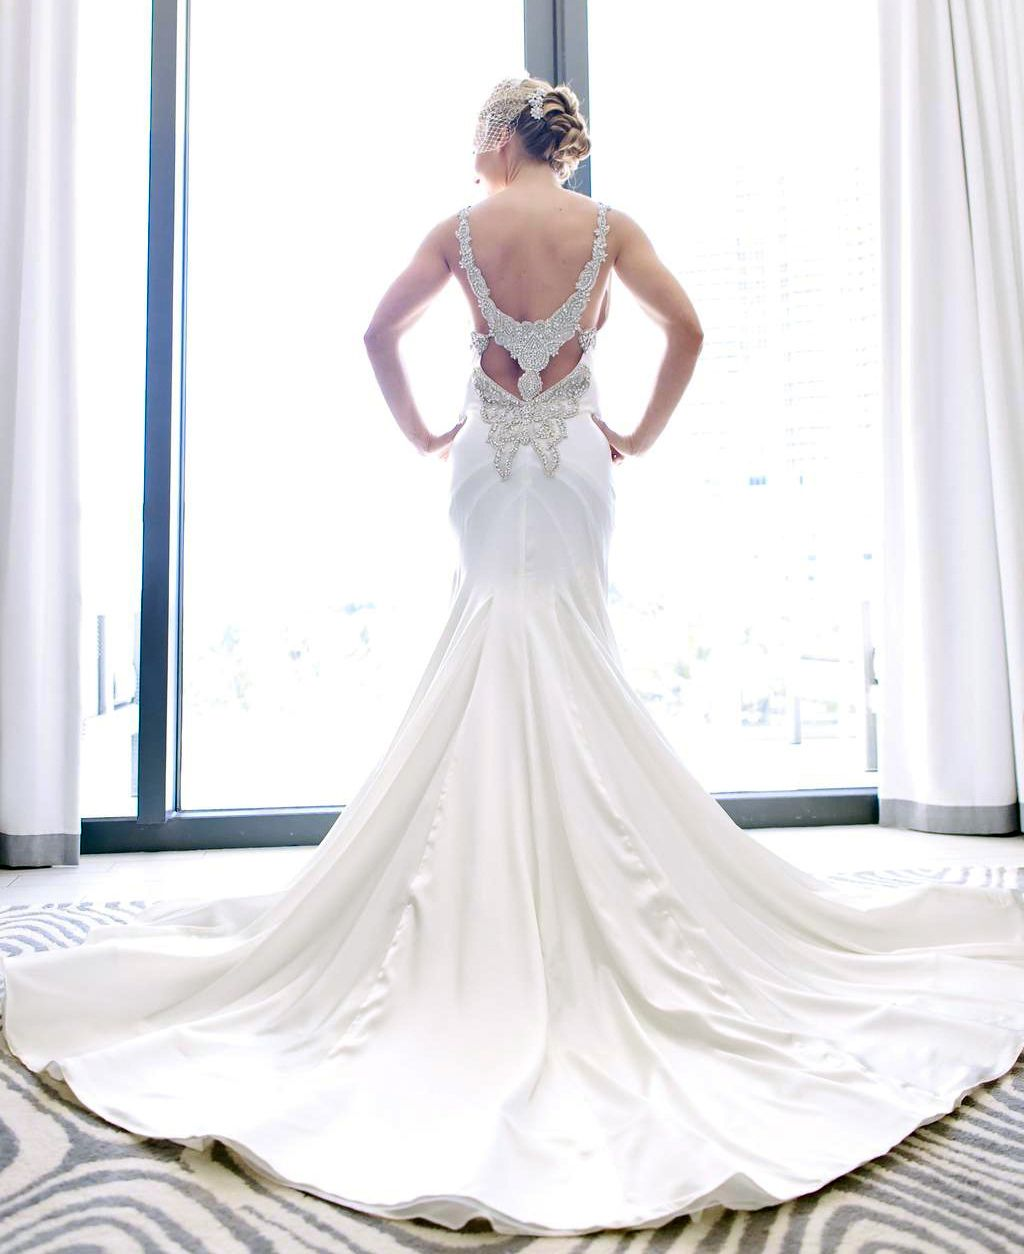 2018 Preowned Wedding Dresses.com - Women\'s Dresses for Wedding ...